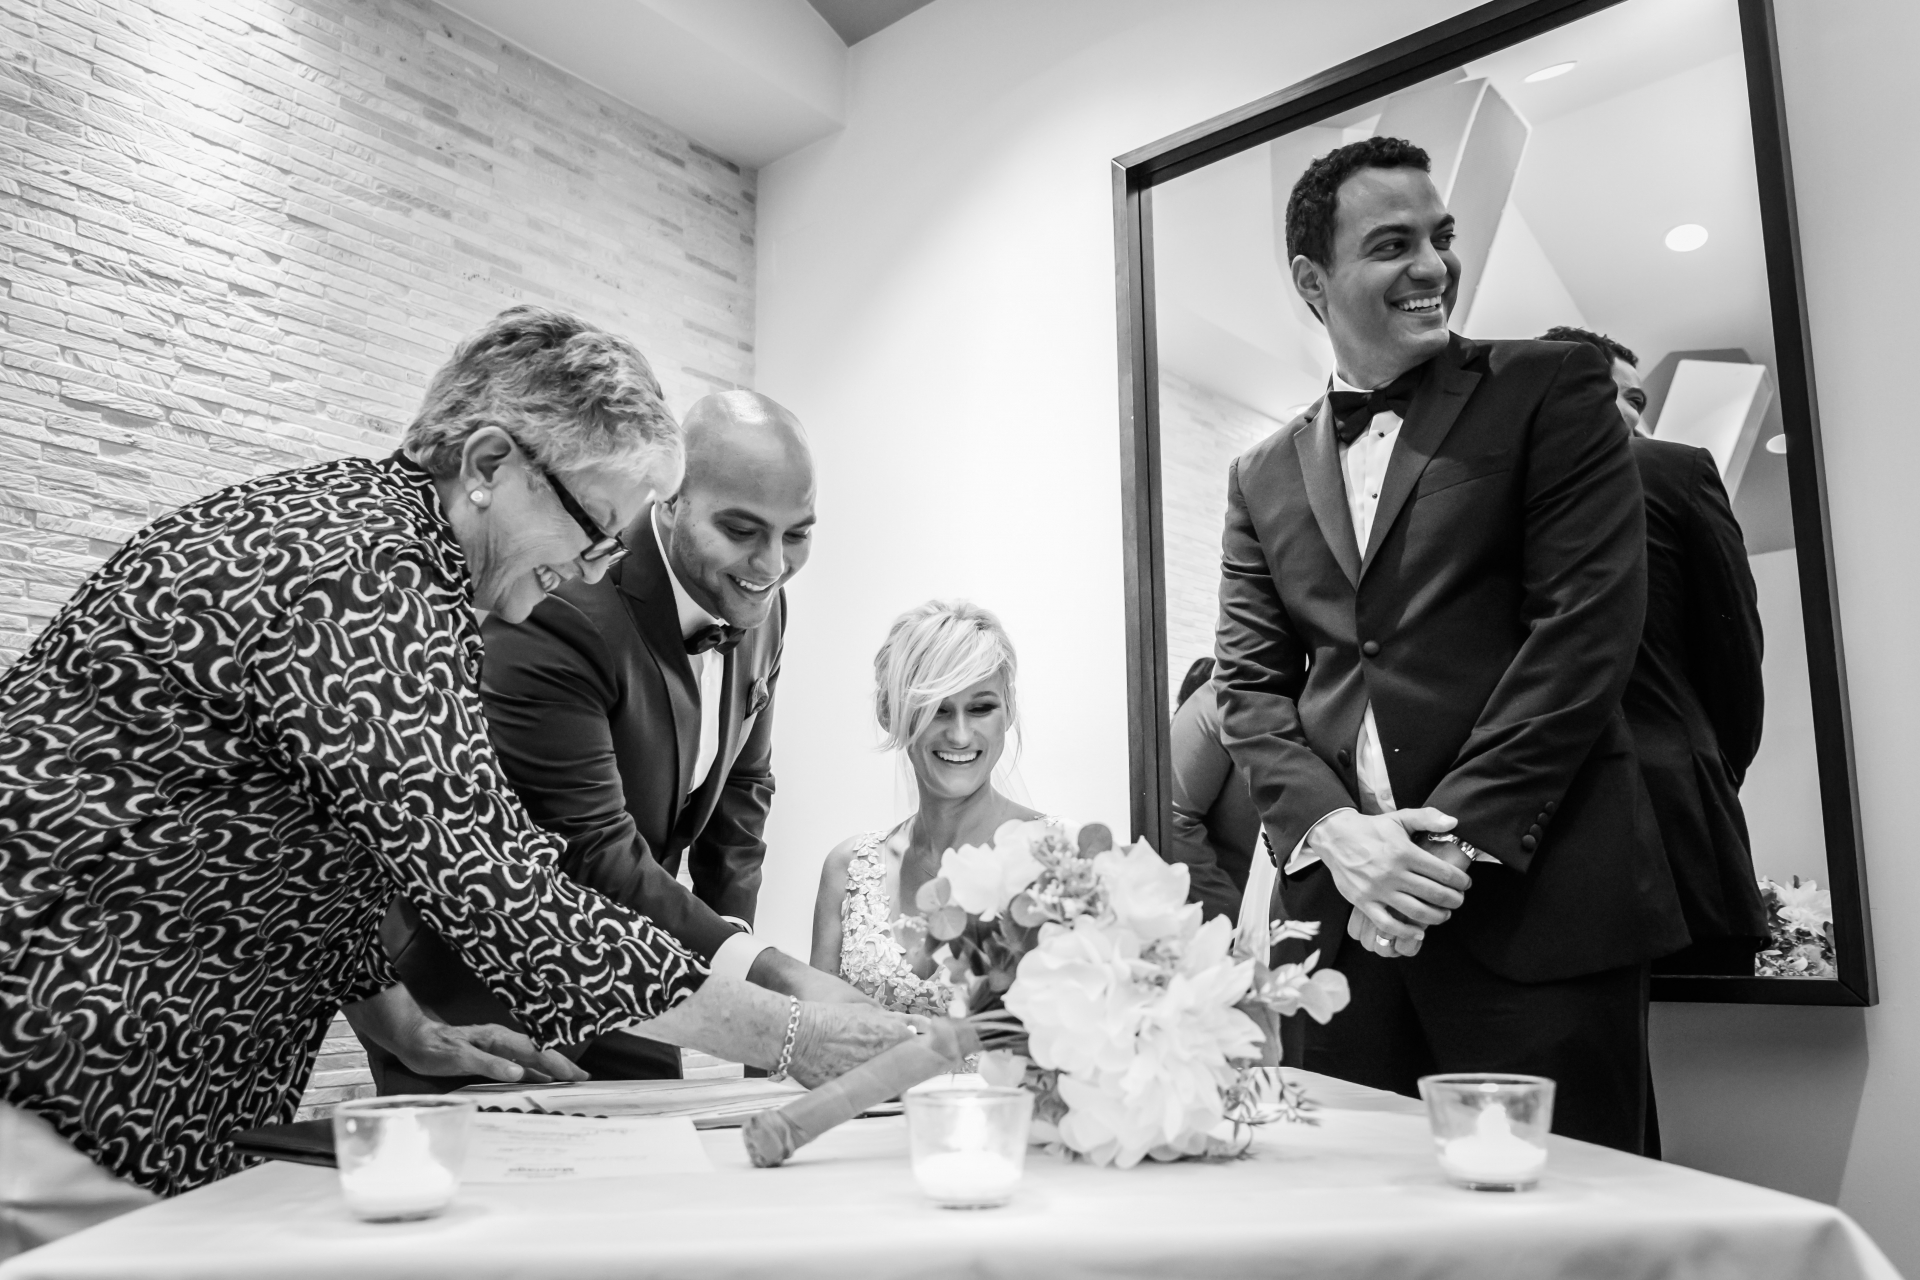 Canada Elopement Marriage Photo from the Toronto Ceremony | A light moment shared while signing the marriage documents